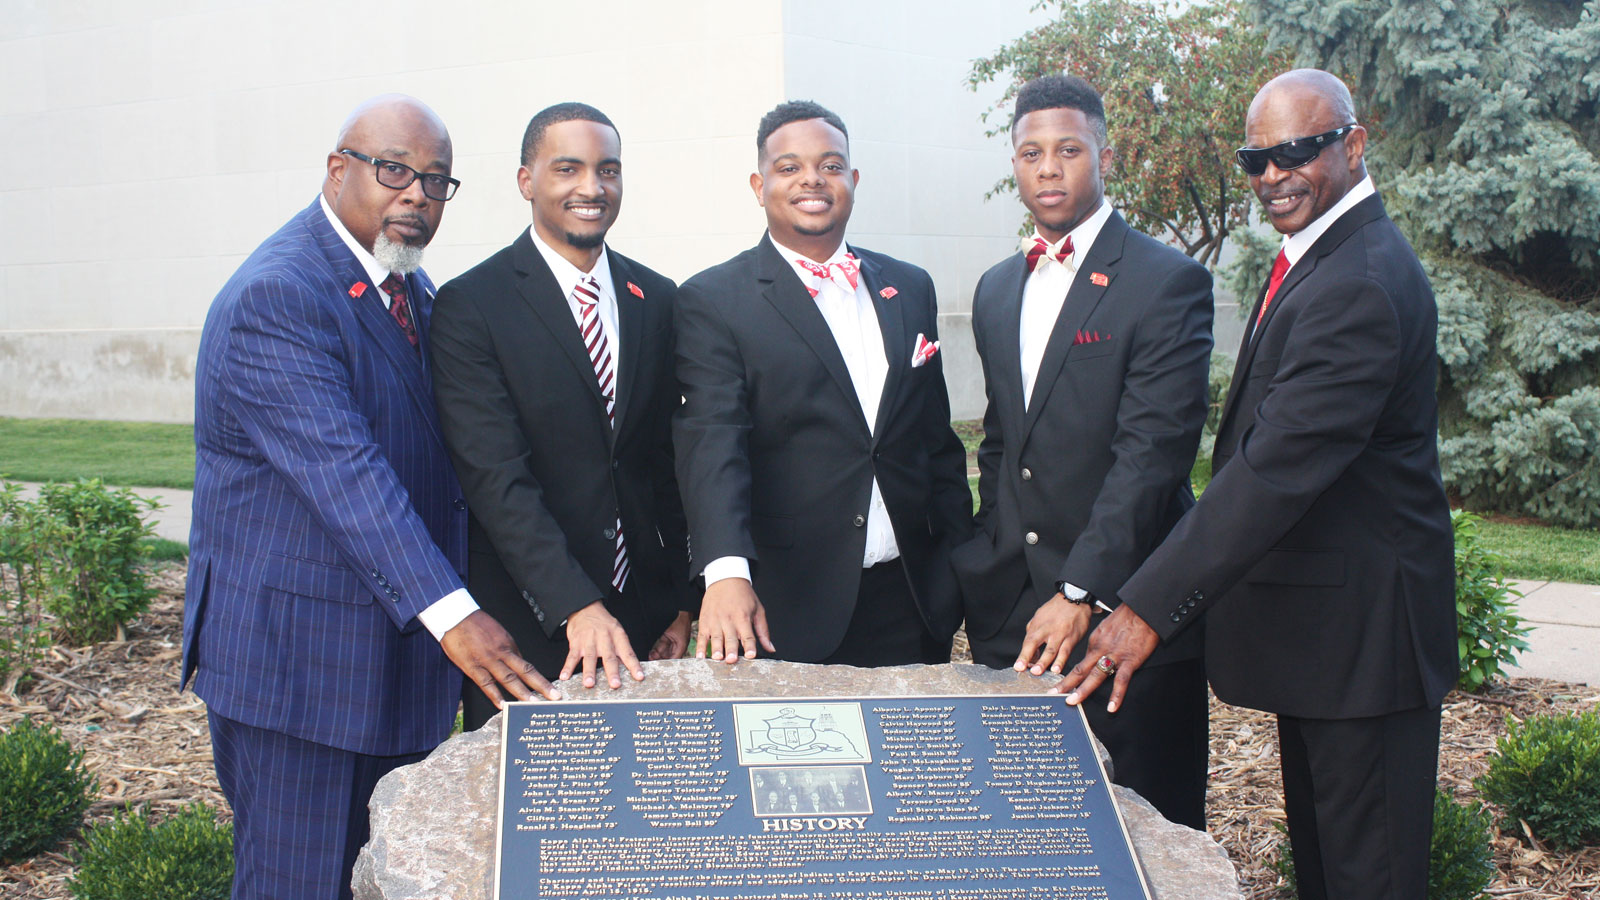 2d40ada2e670 Members of Kappa Alpha Psi fraternity with new rock located south of the  Nebraska Union